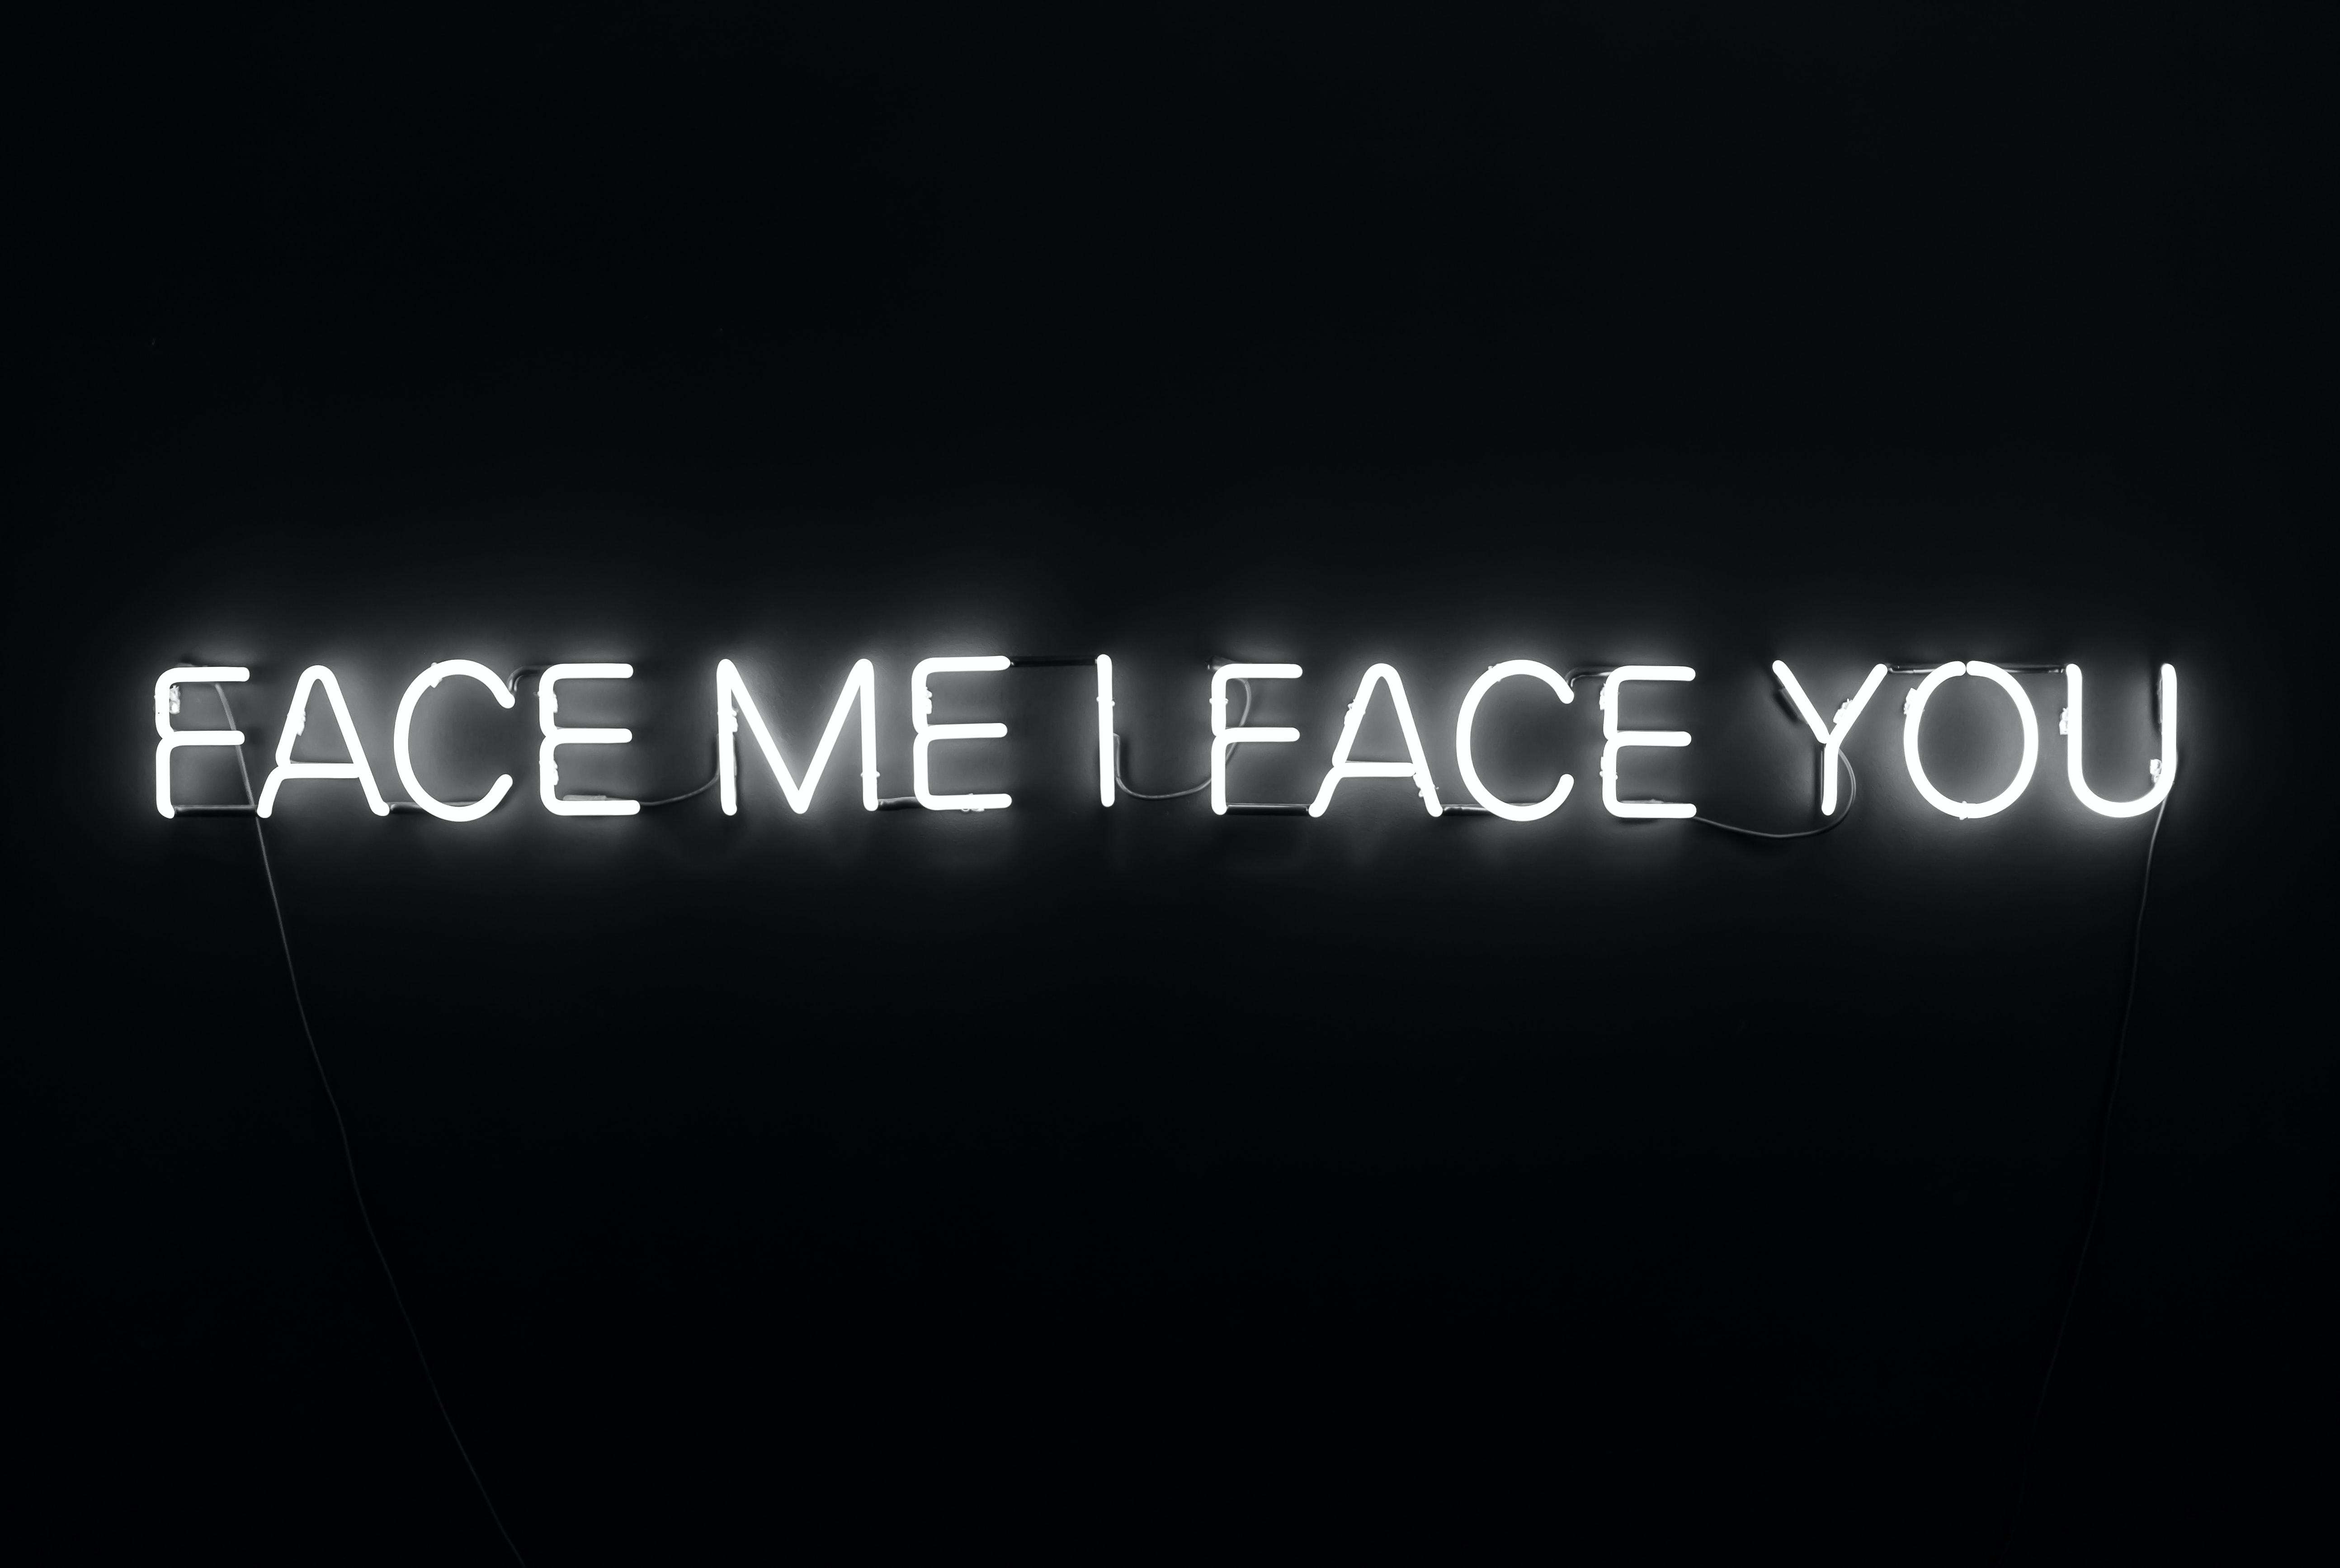 Face me I face you white neon sign at work on dark background, Phoenix Art Museum